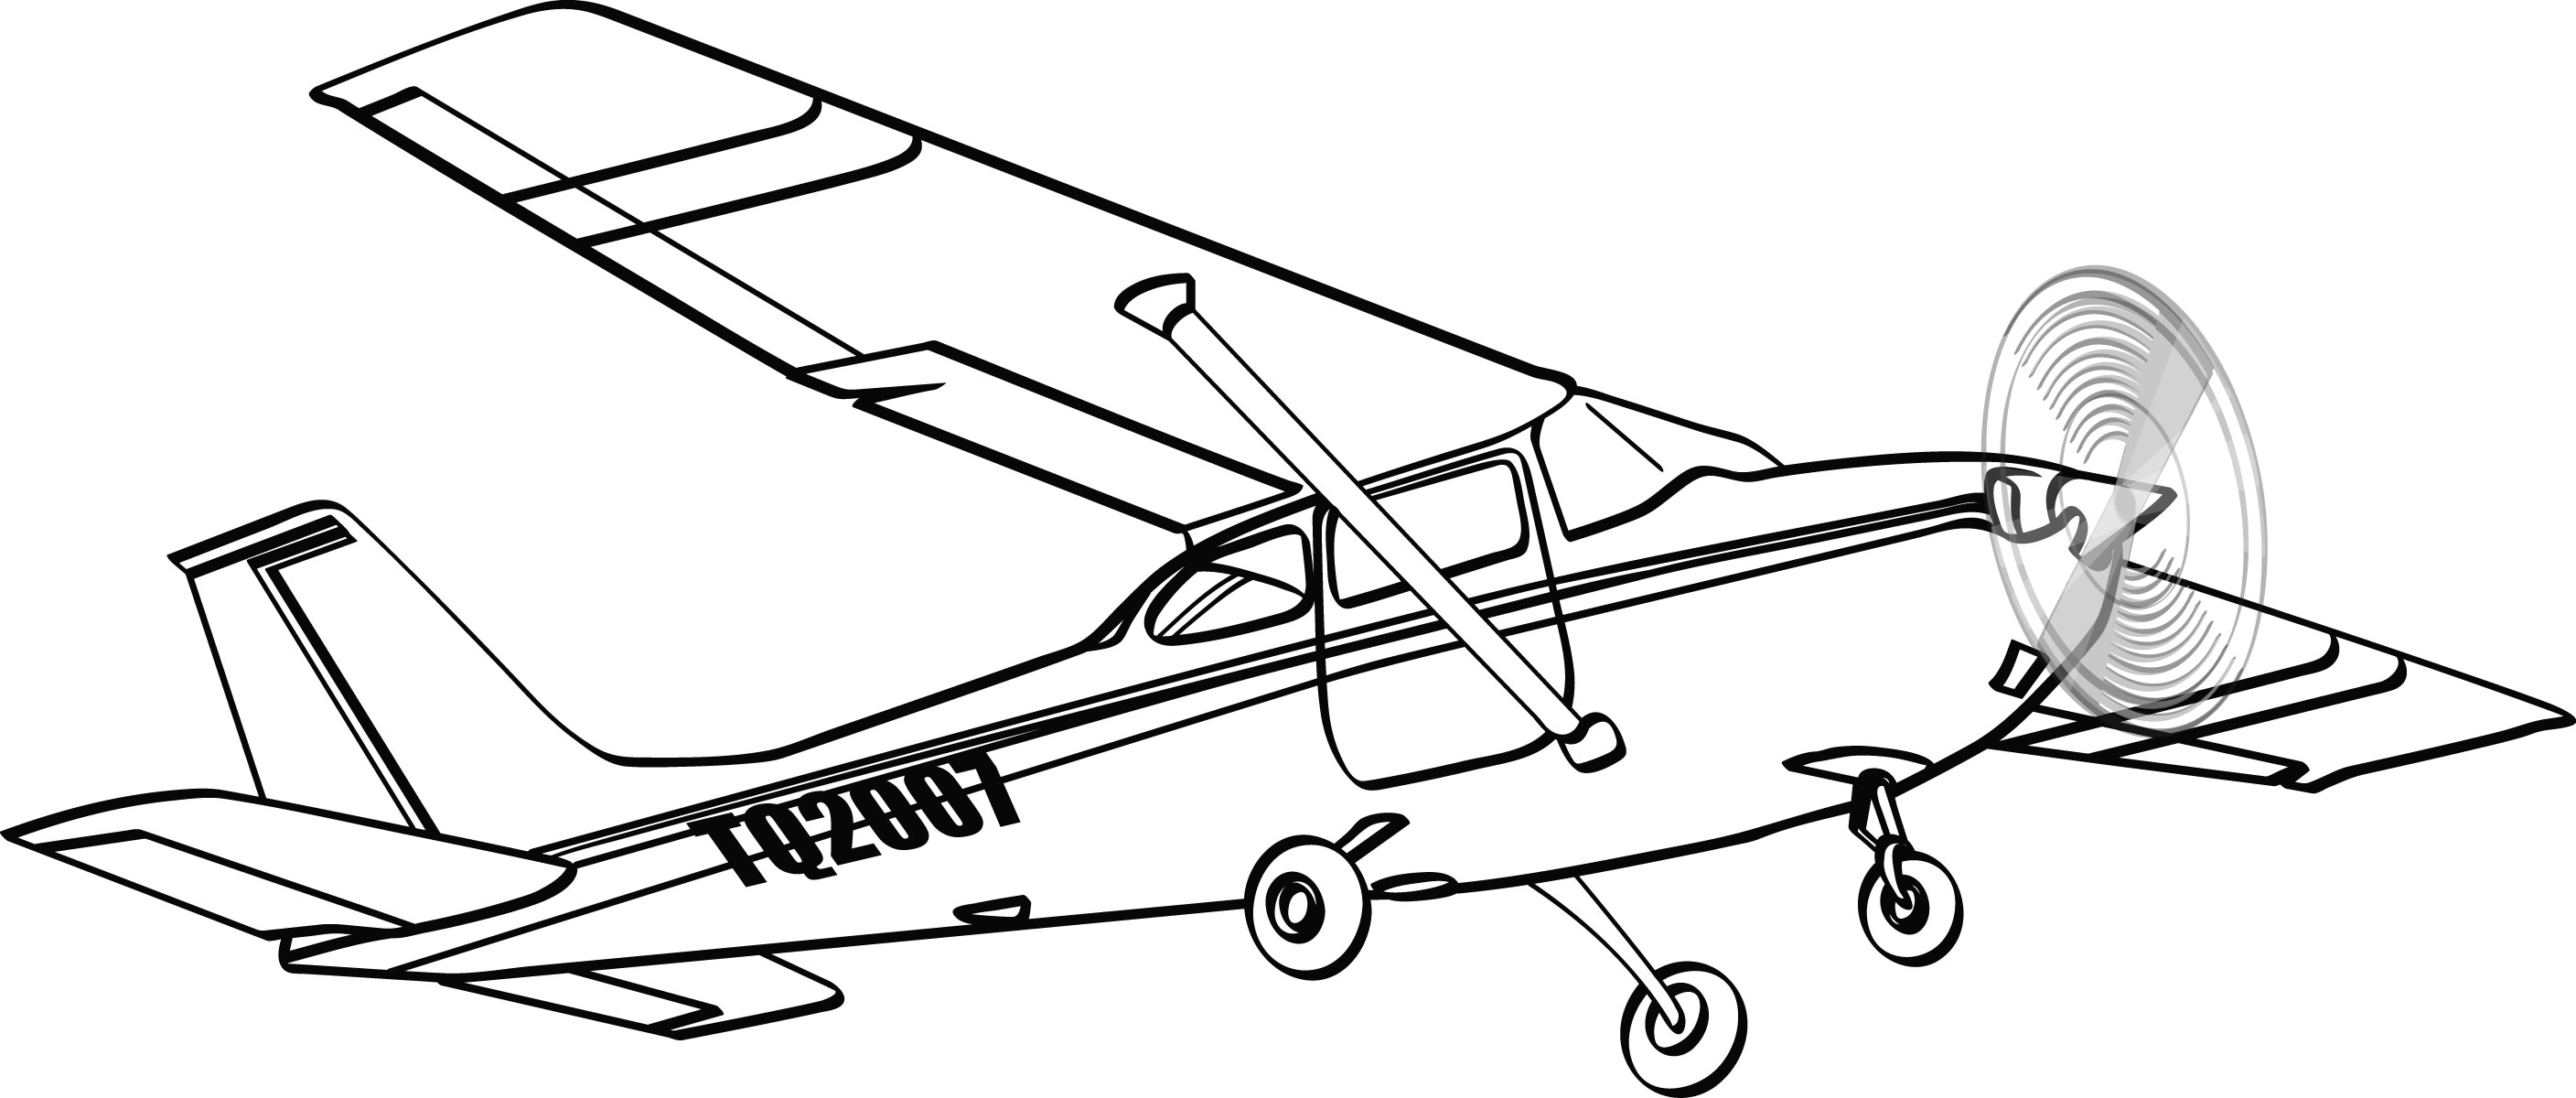 Line Drawing Airplane : Plane drawings clipart suggest